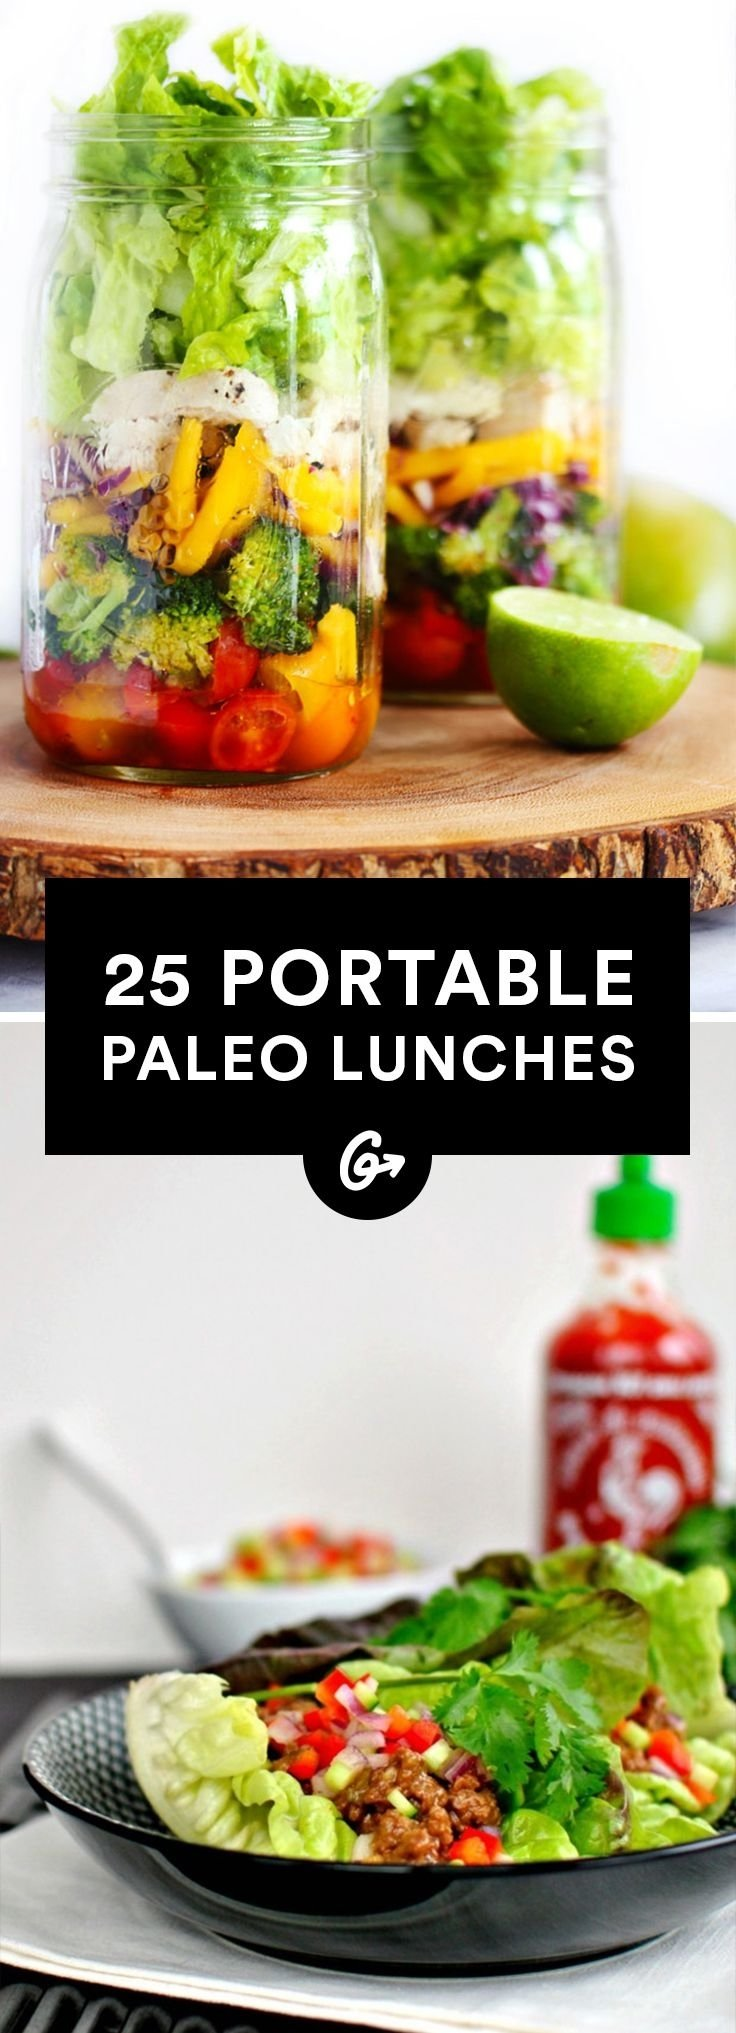 10 Lovable Paleo Lunch Ideas For Work 25 essential paleo lunch recipes paleo plat principal et principal